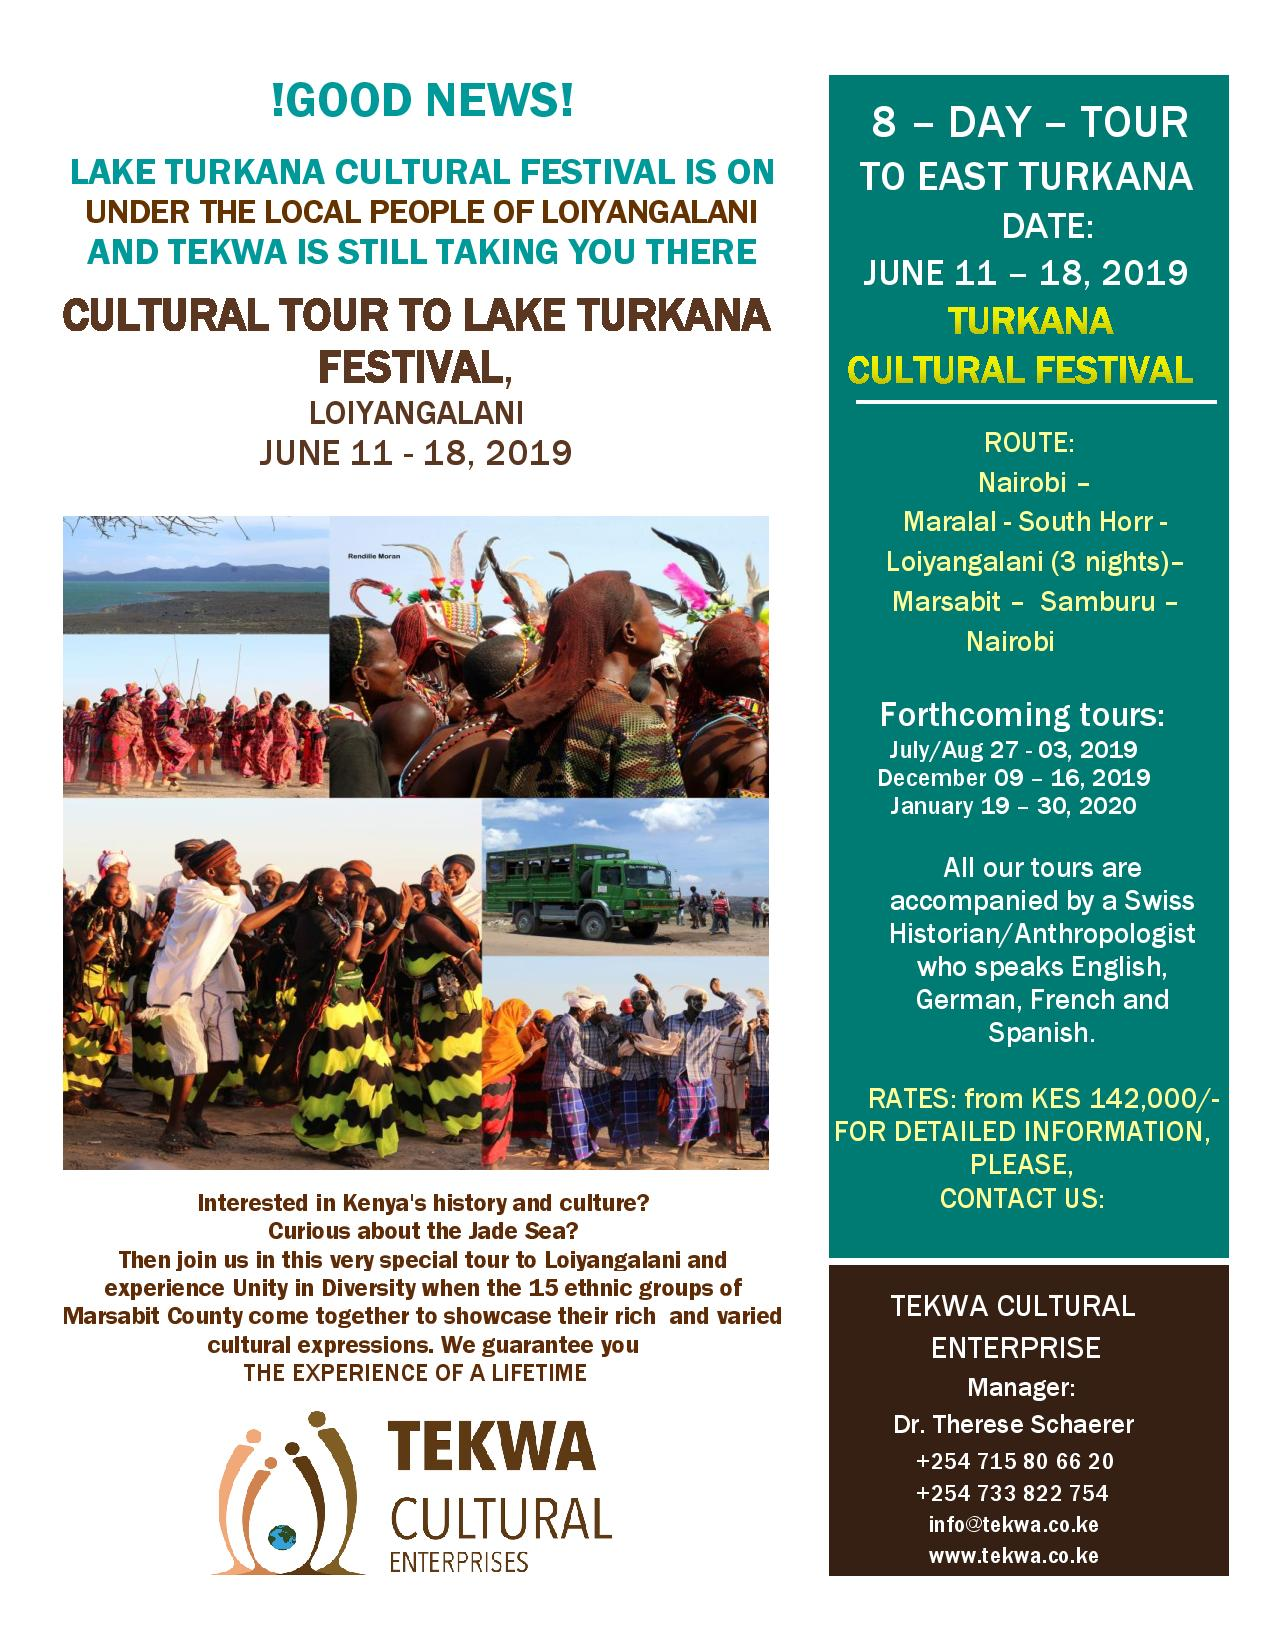 Tour to Lake Turkana Cultural Festival